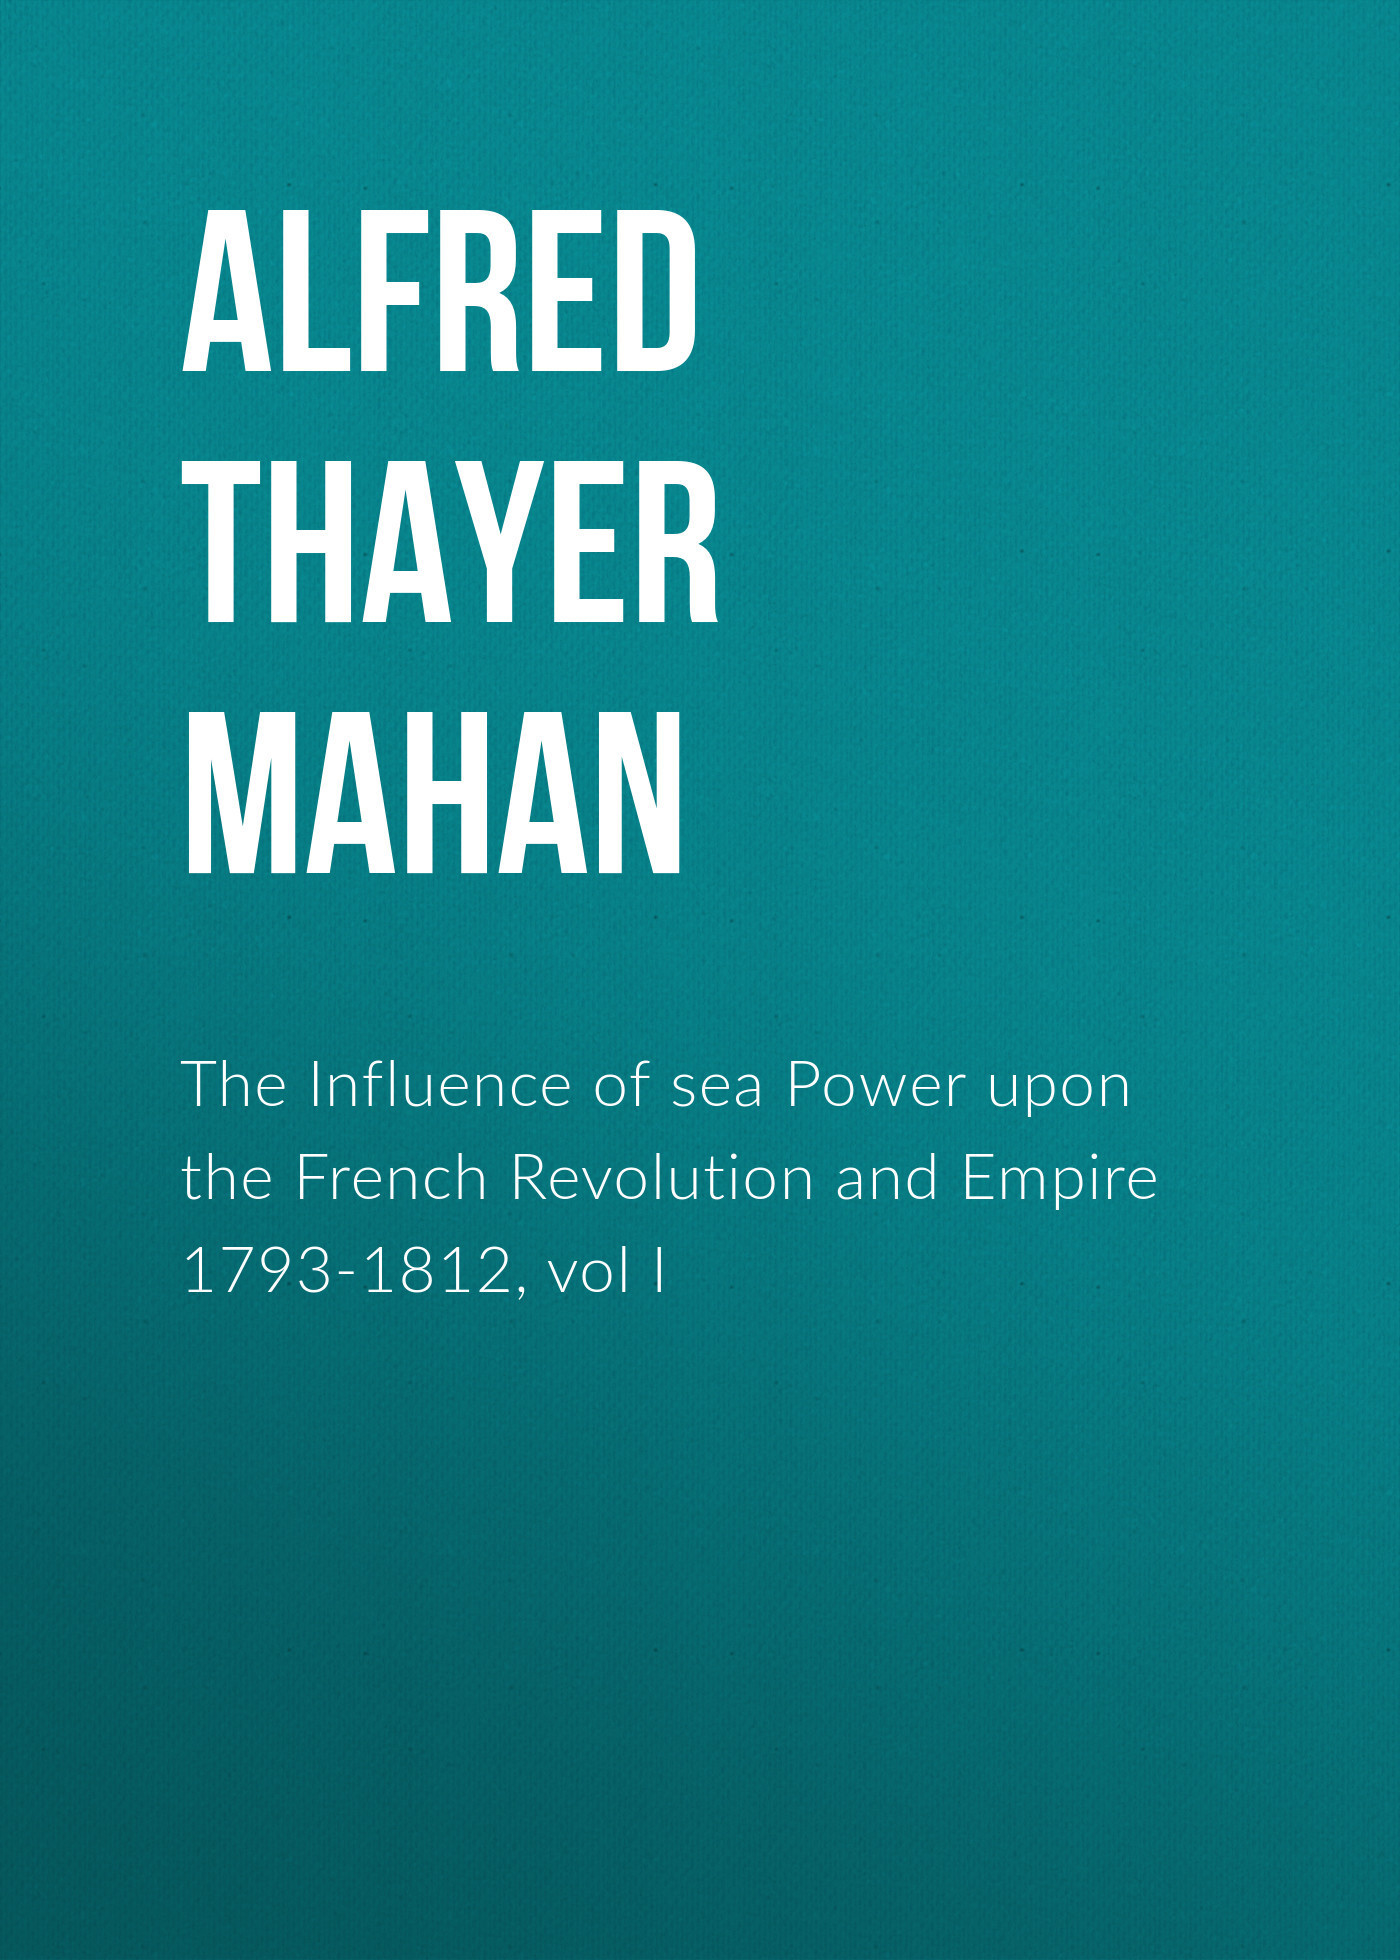 Alfred Thayer Mahan The Influence of sea Power upon the French Revolution and Empire 1793-1812, vol I retro vintage black rust wrought iron cage chandeliers e14 big french empire style crystal chandelier led lamp hardware lighting